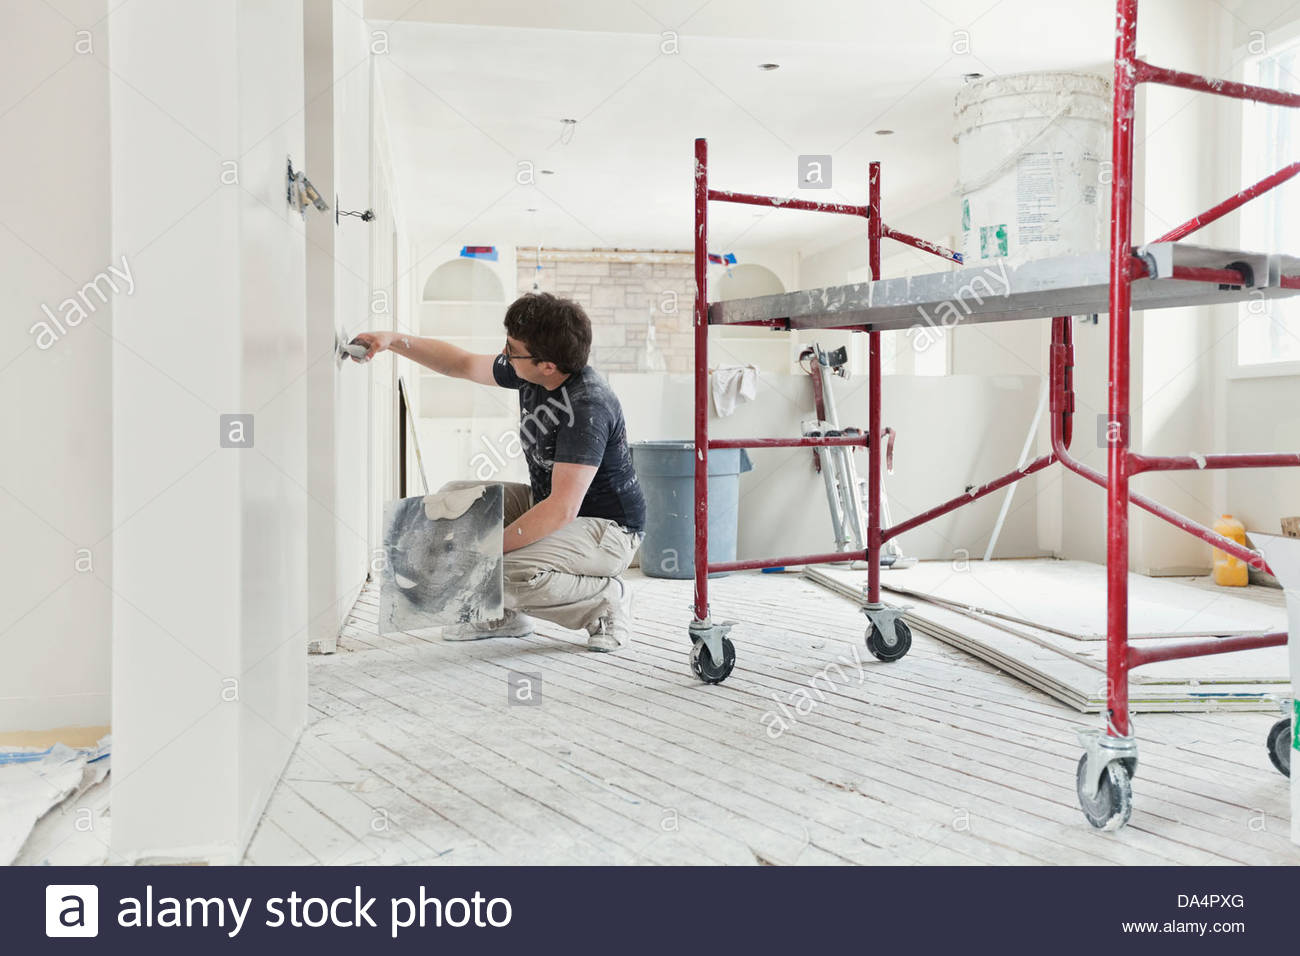 Tradesman plastering drywall with trowel in home - Stock Image